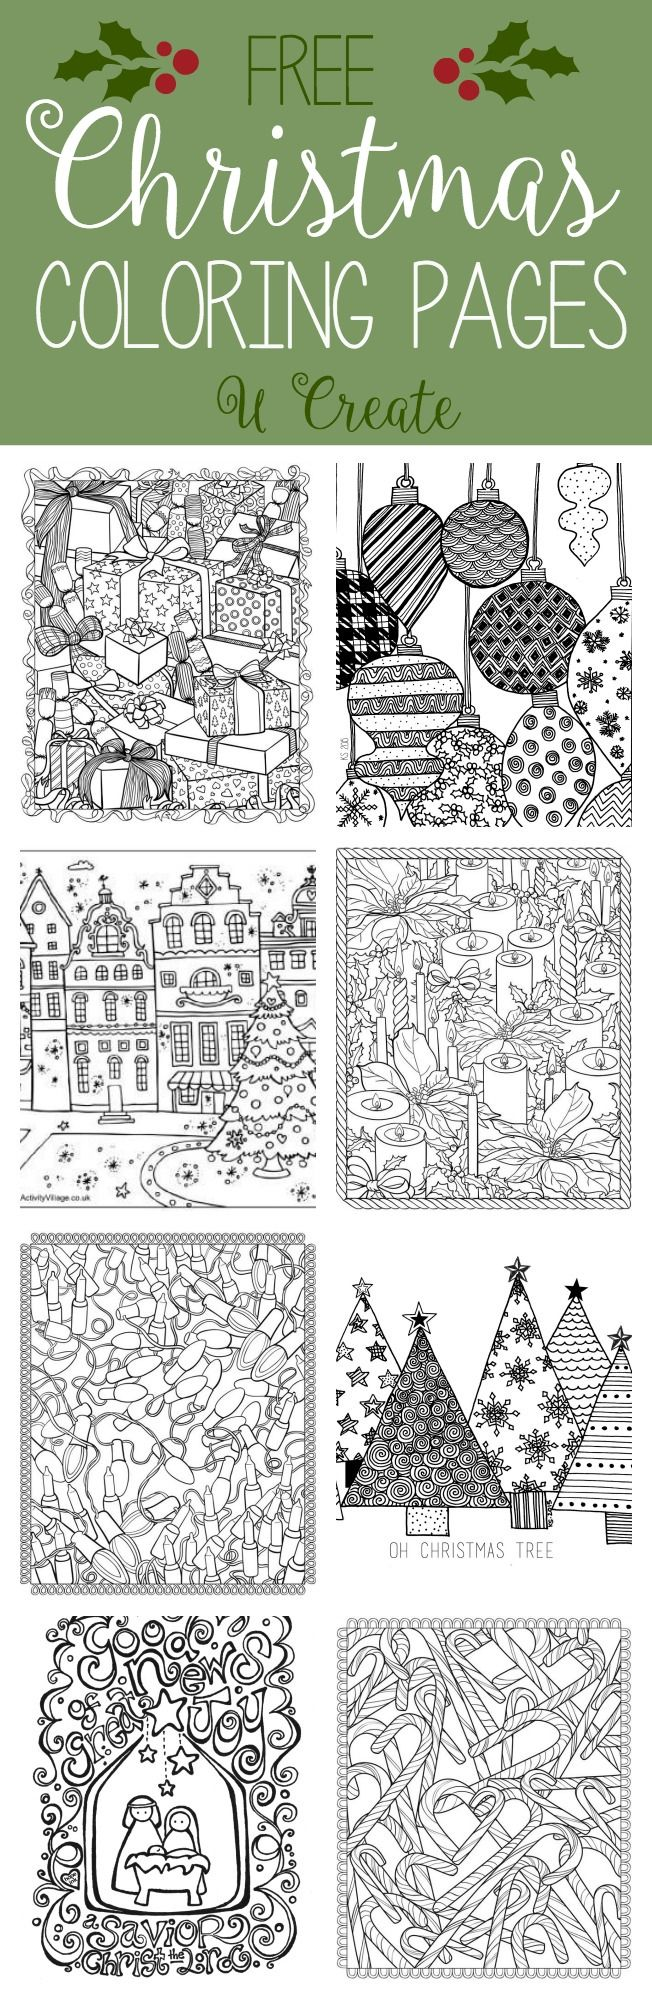 Free Christmas Adult Coloring Pages U Create Adult Coloring